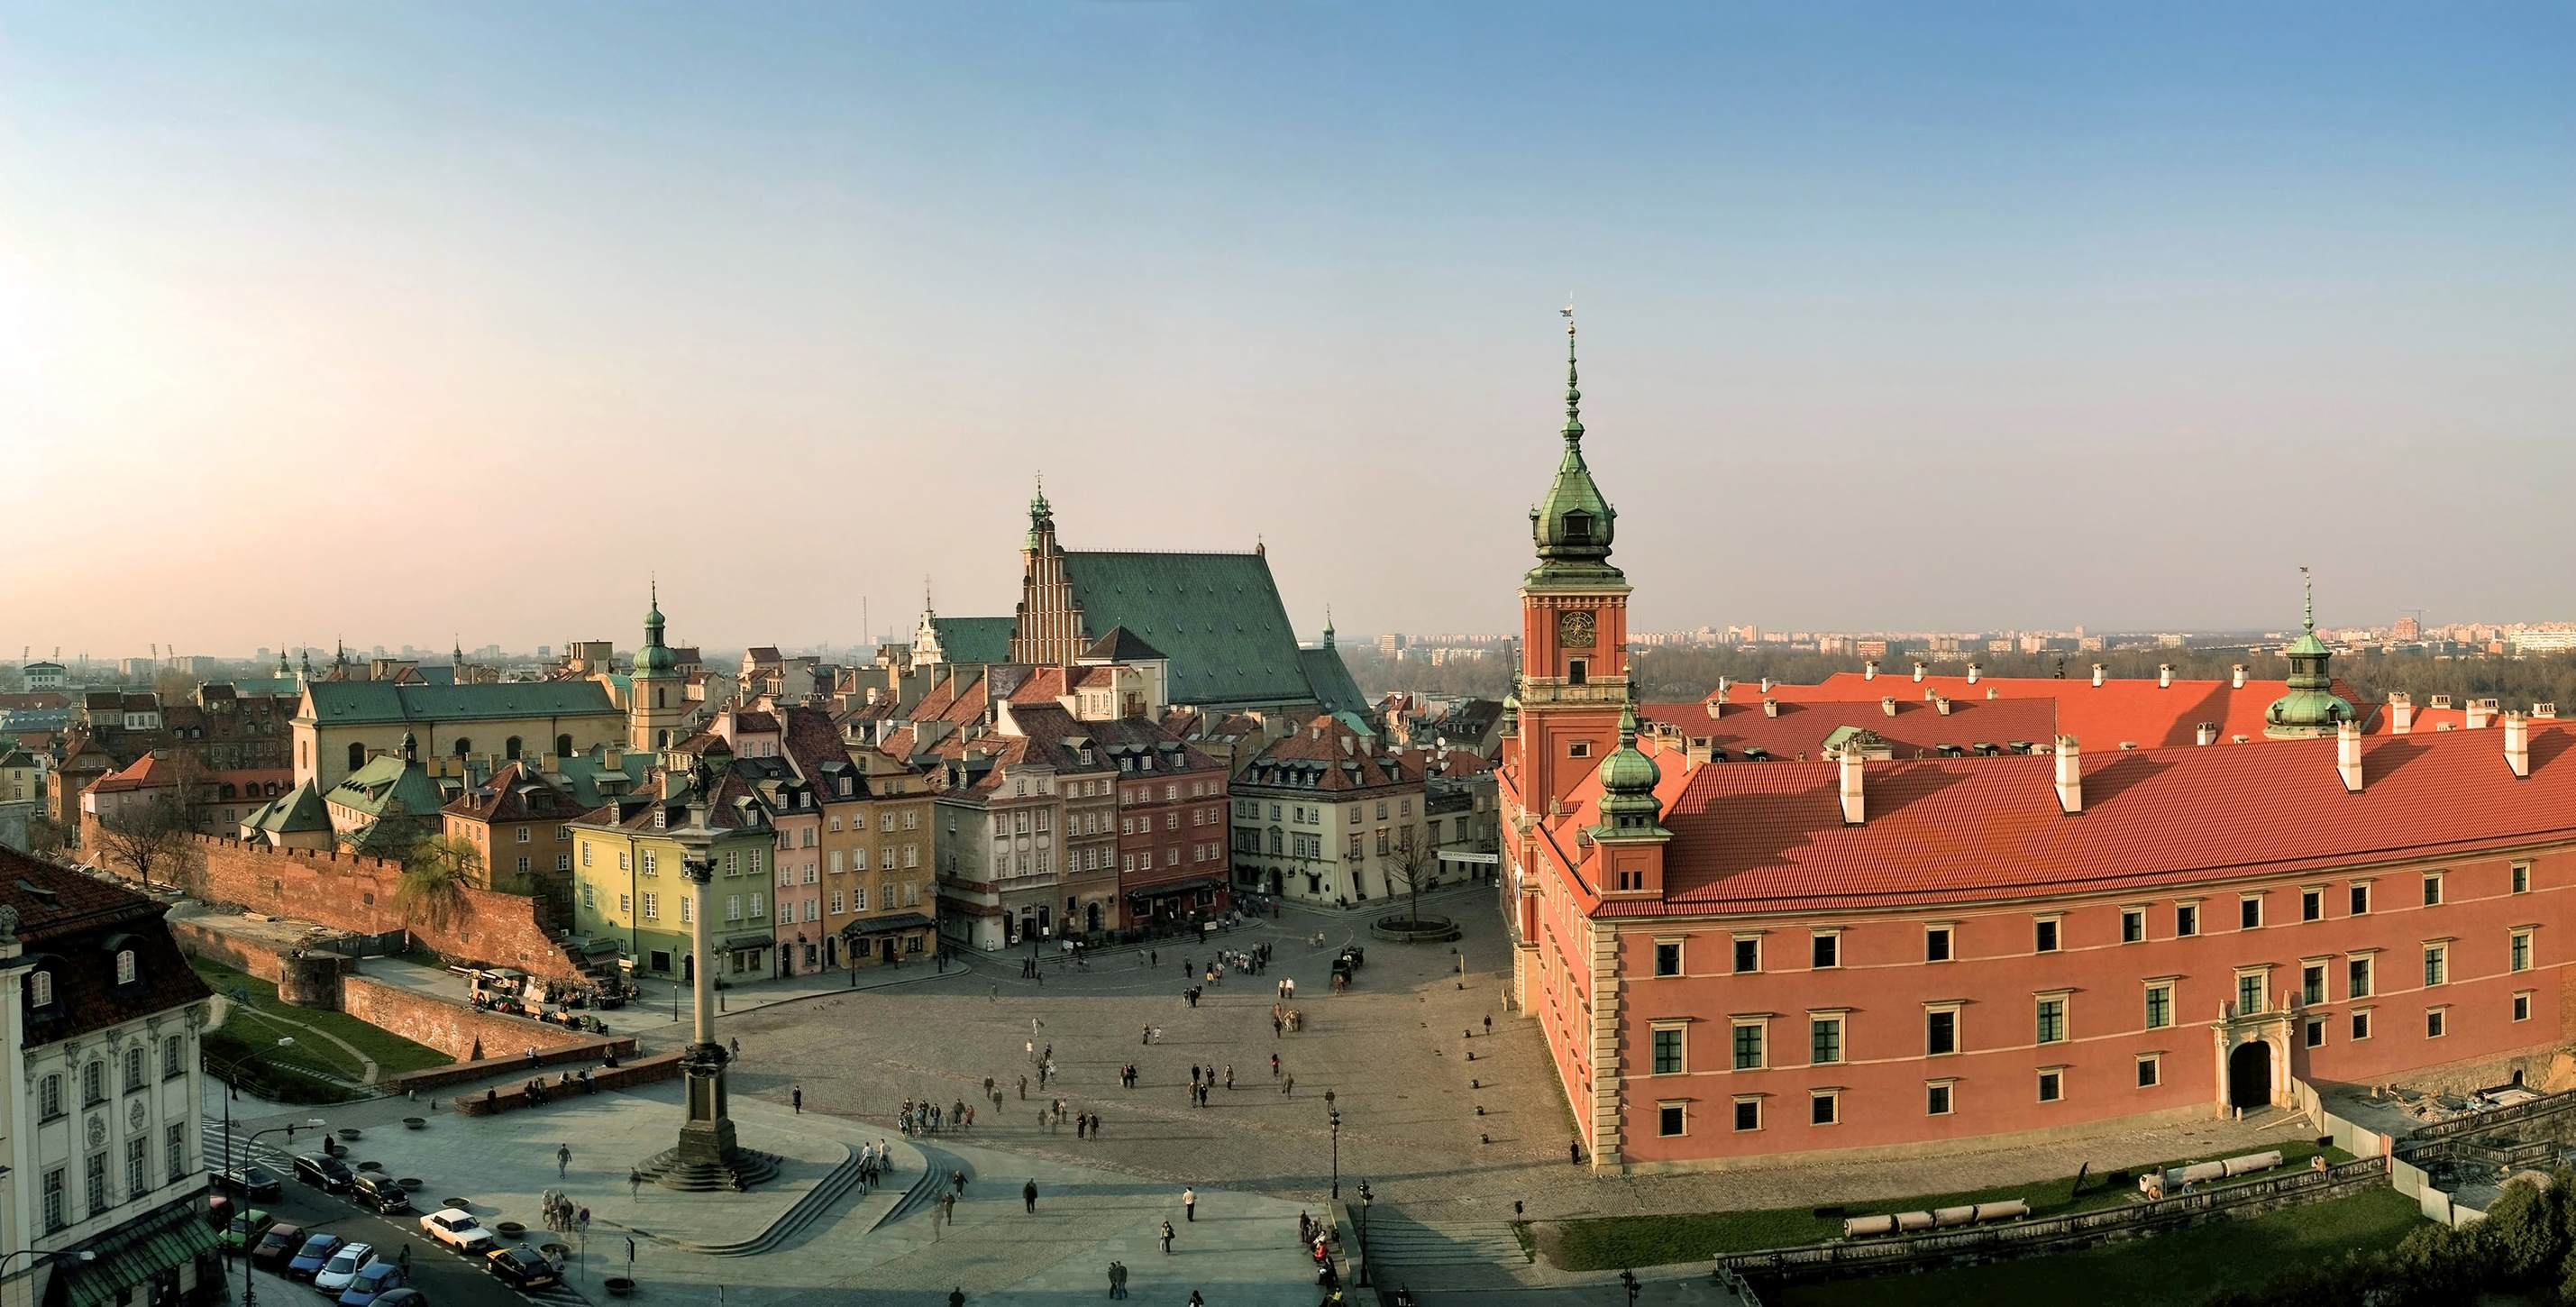 Car Company Warsaw >> Behind the Iron Curtain - Polish Tours & Travel Agency - Greetings from Poland!